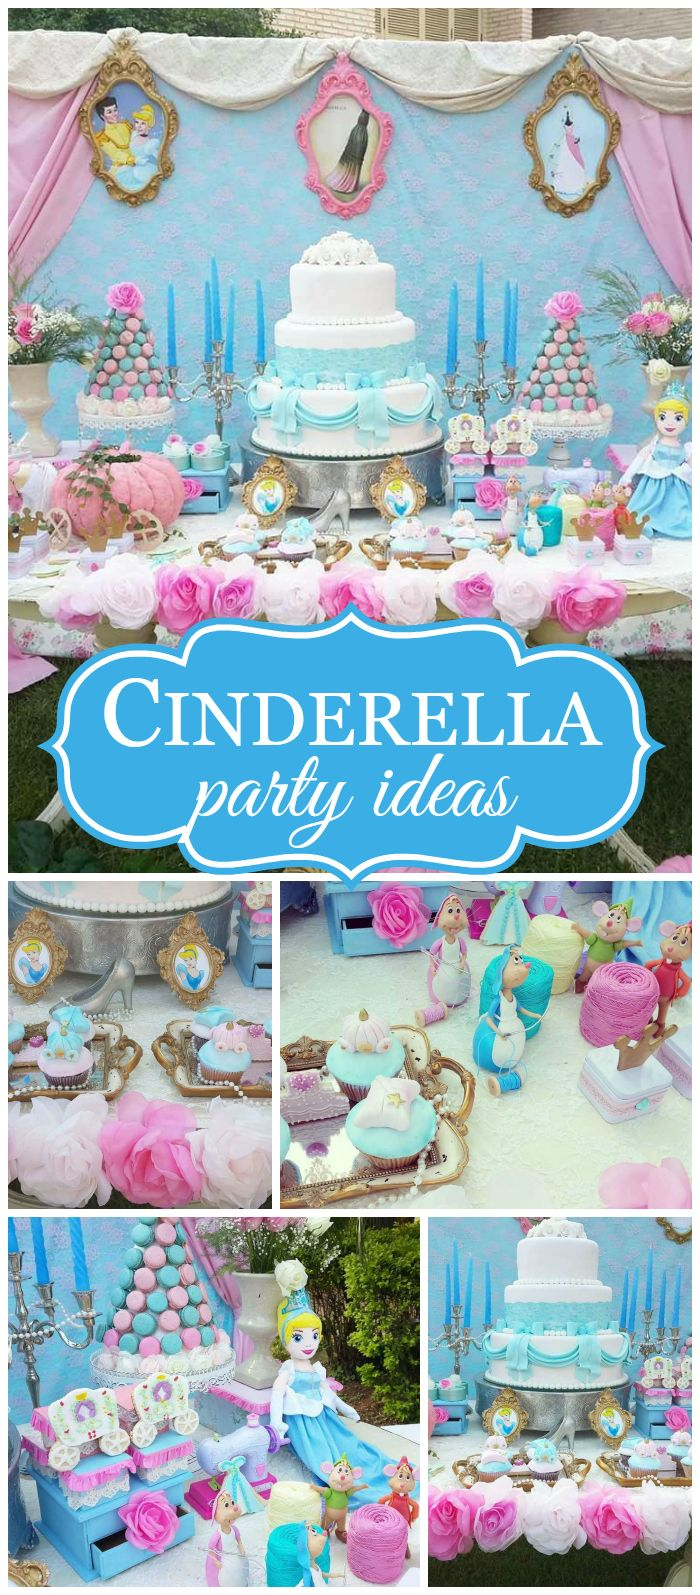 34 Best Cinderella Party Images On Pinterest Cinderella Birthday